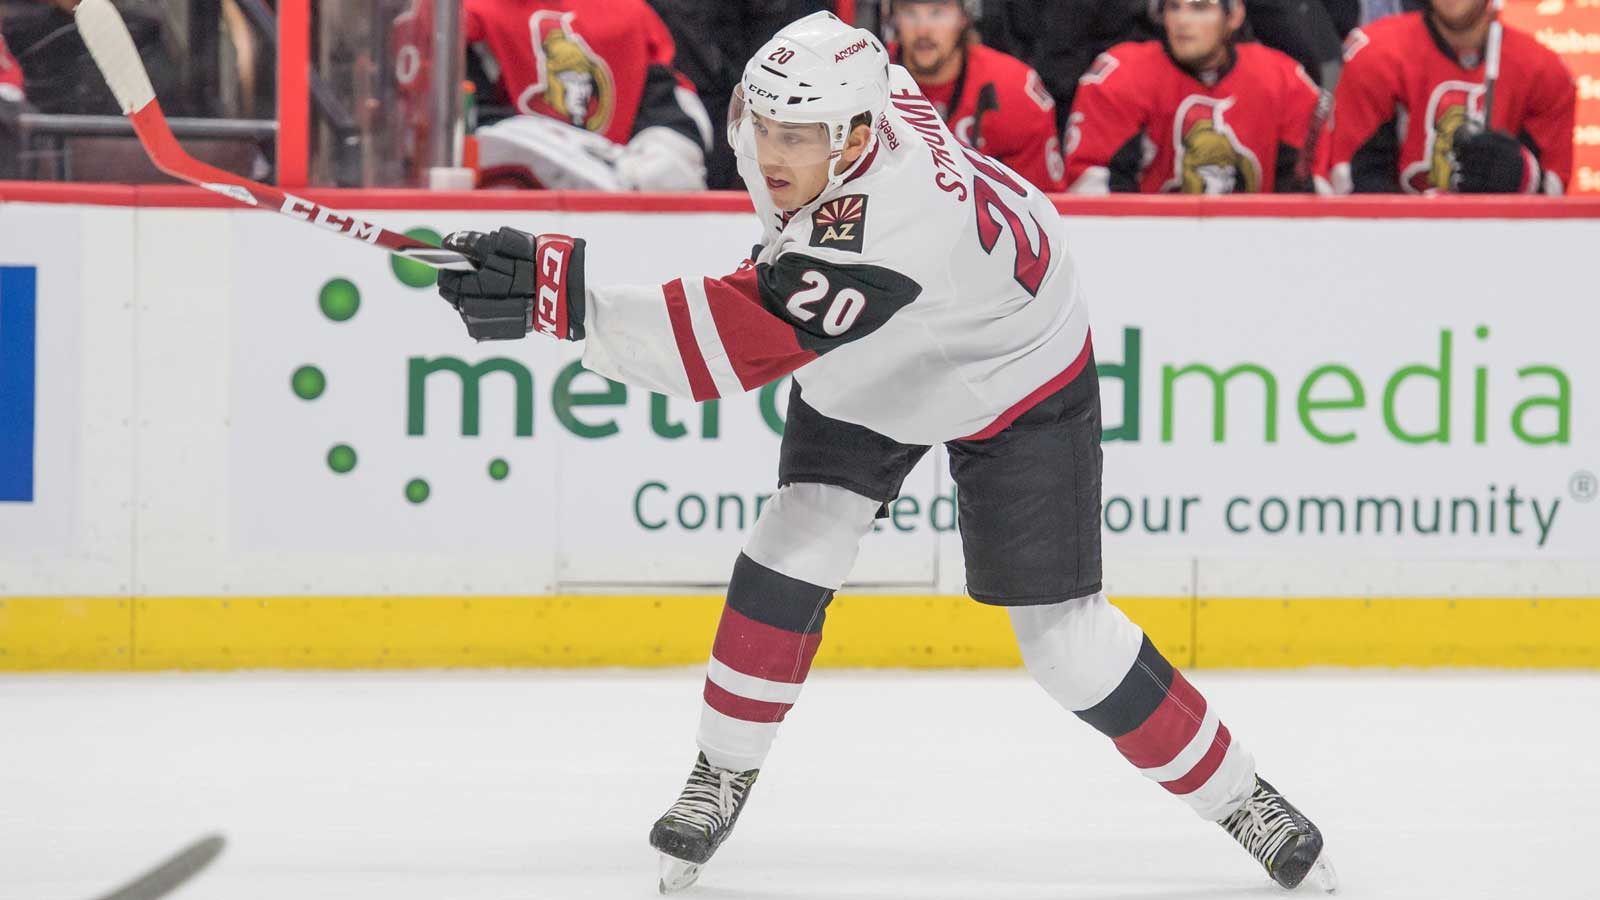 Coyotes call up center Dylan Strome from Tucson